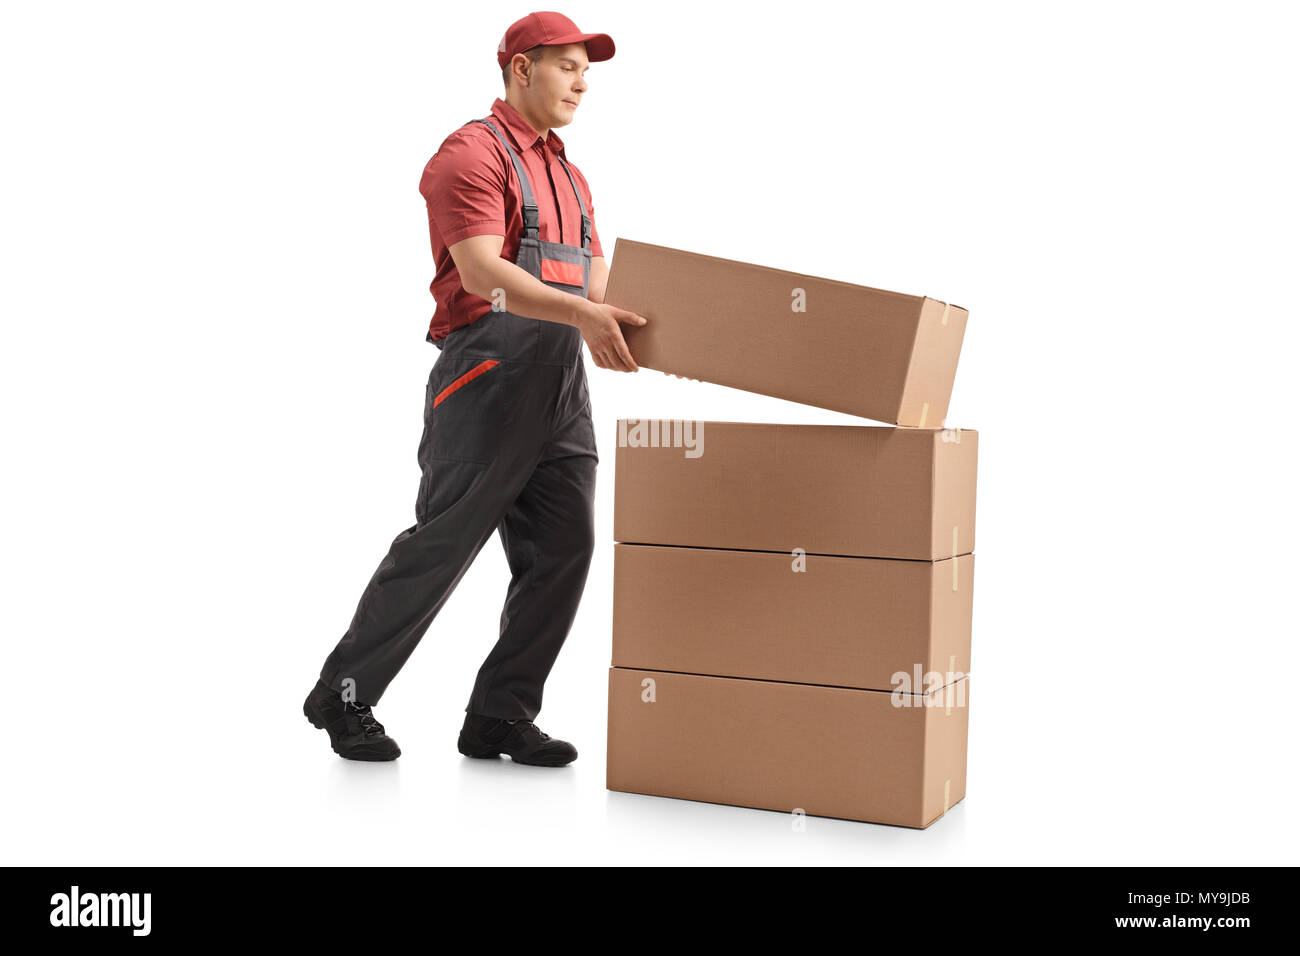 Full length profile shot of a mover placing a package on top of a stack isolated on white background - Stock Image